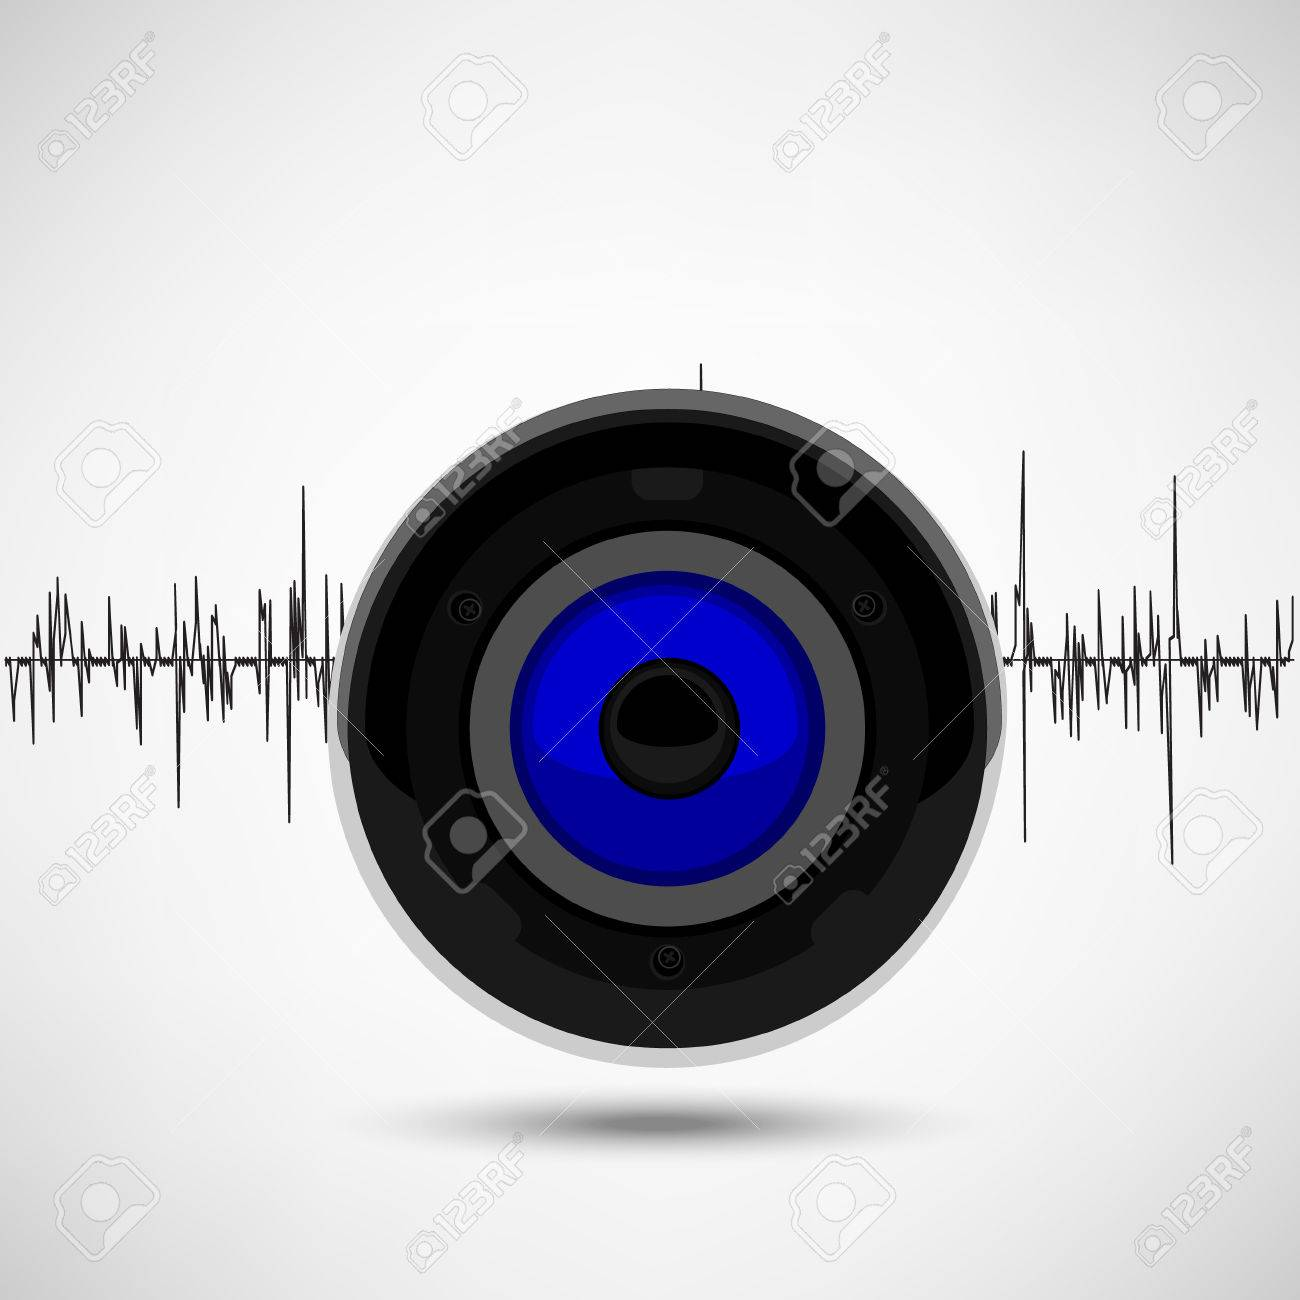 Amazing Wallpaper Music Party - 77535754-raster-illustration-music-wallpaper-background-poster-with-sound-wave-and-speaker-for-radio-club-or-  You Should Have_1008682.jpg